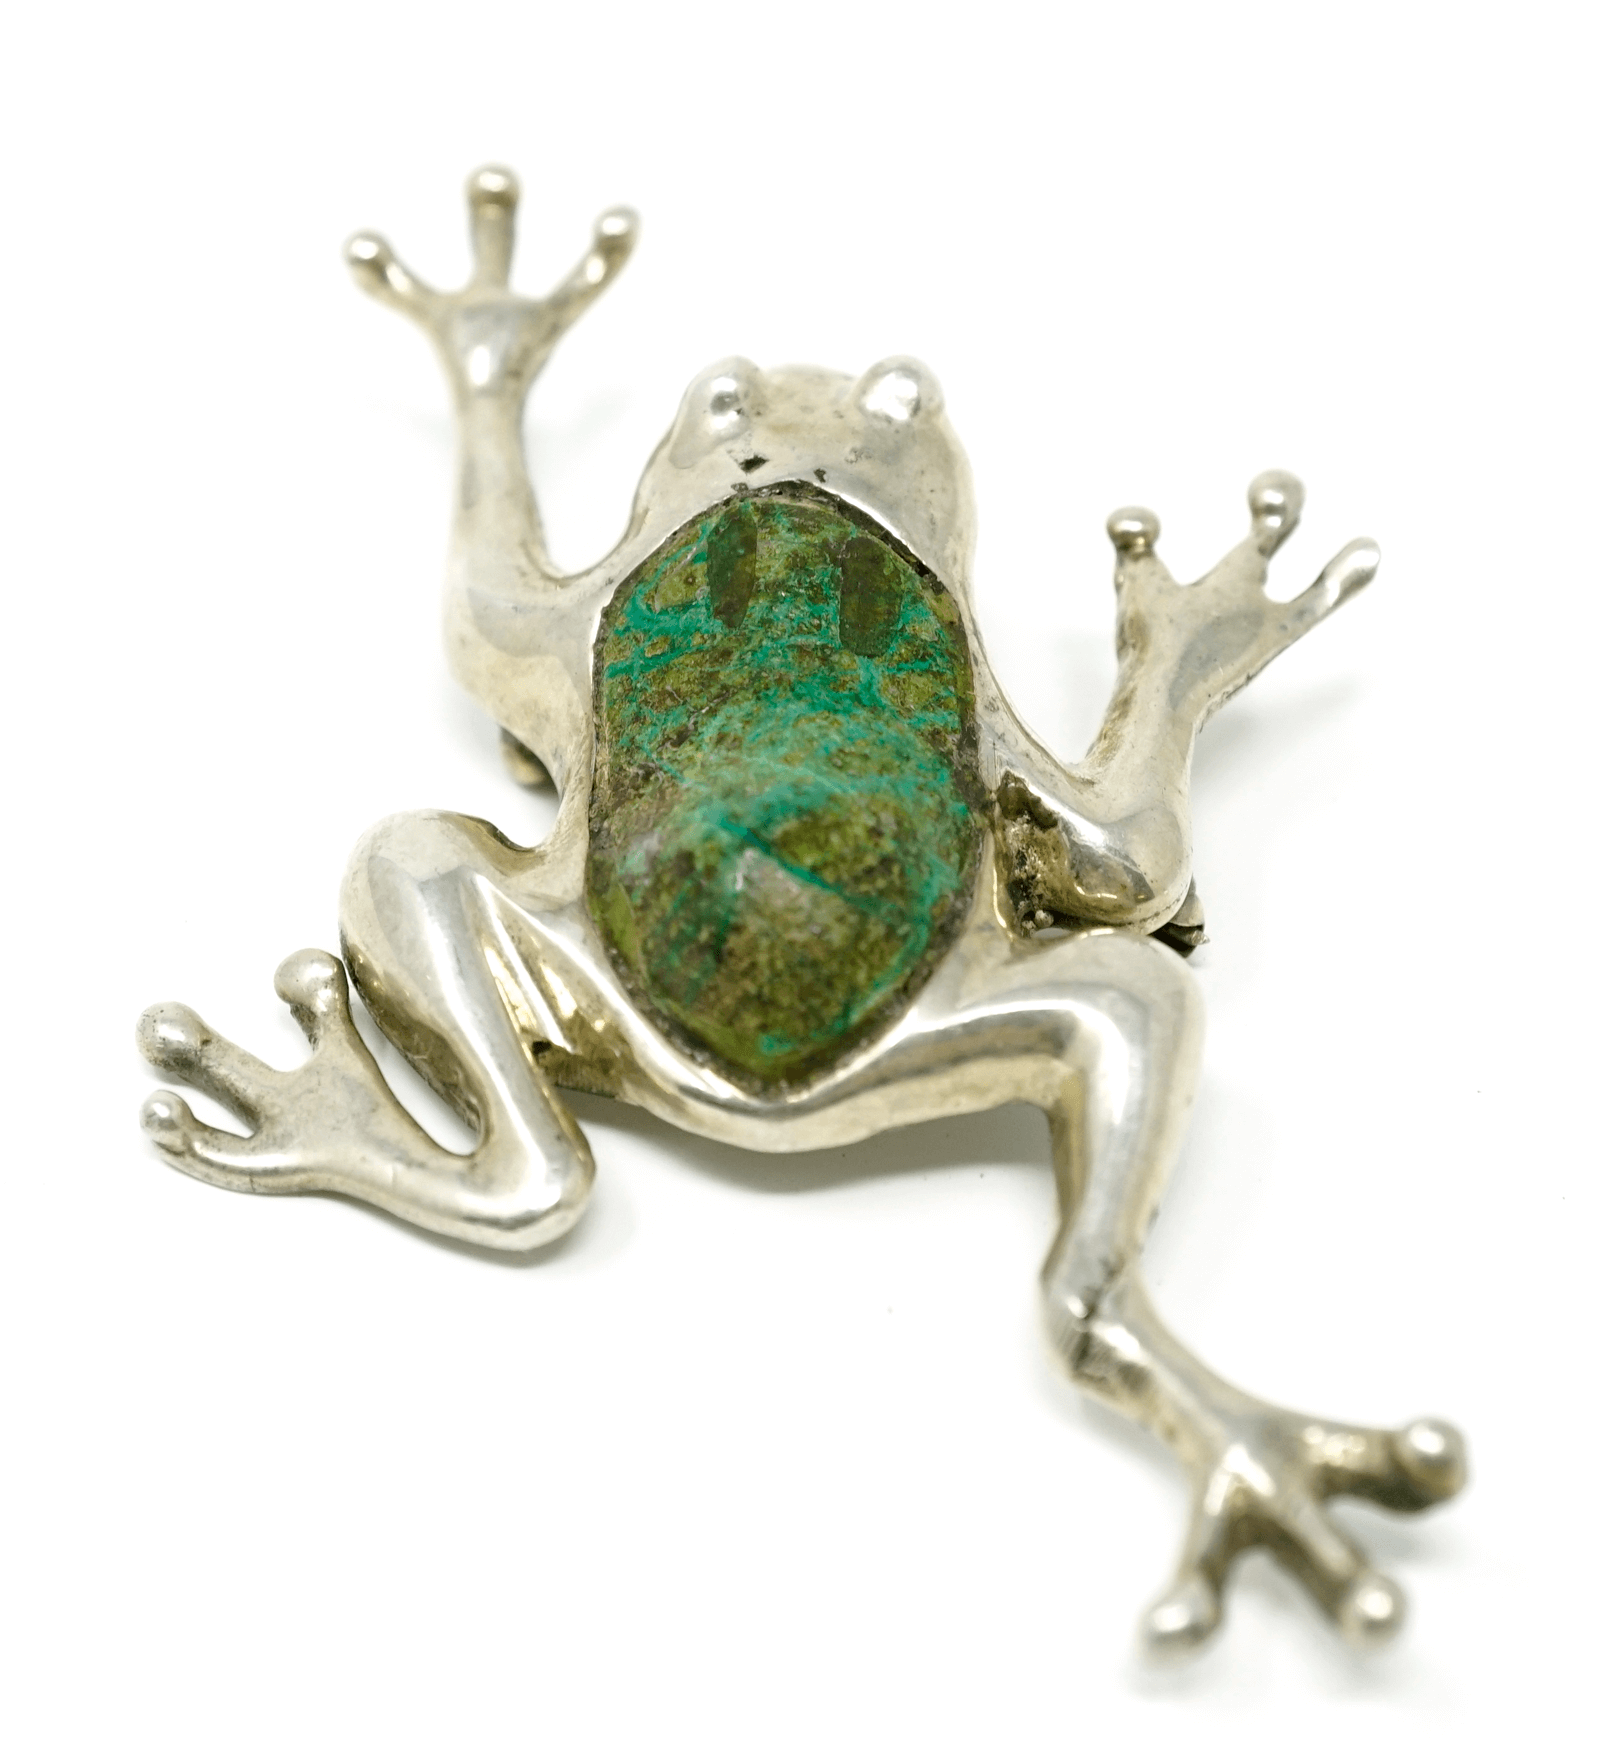 Vintage sterling silver green stone frog pendant